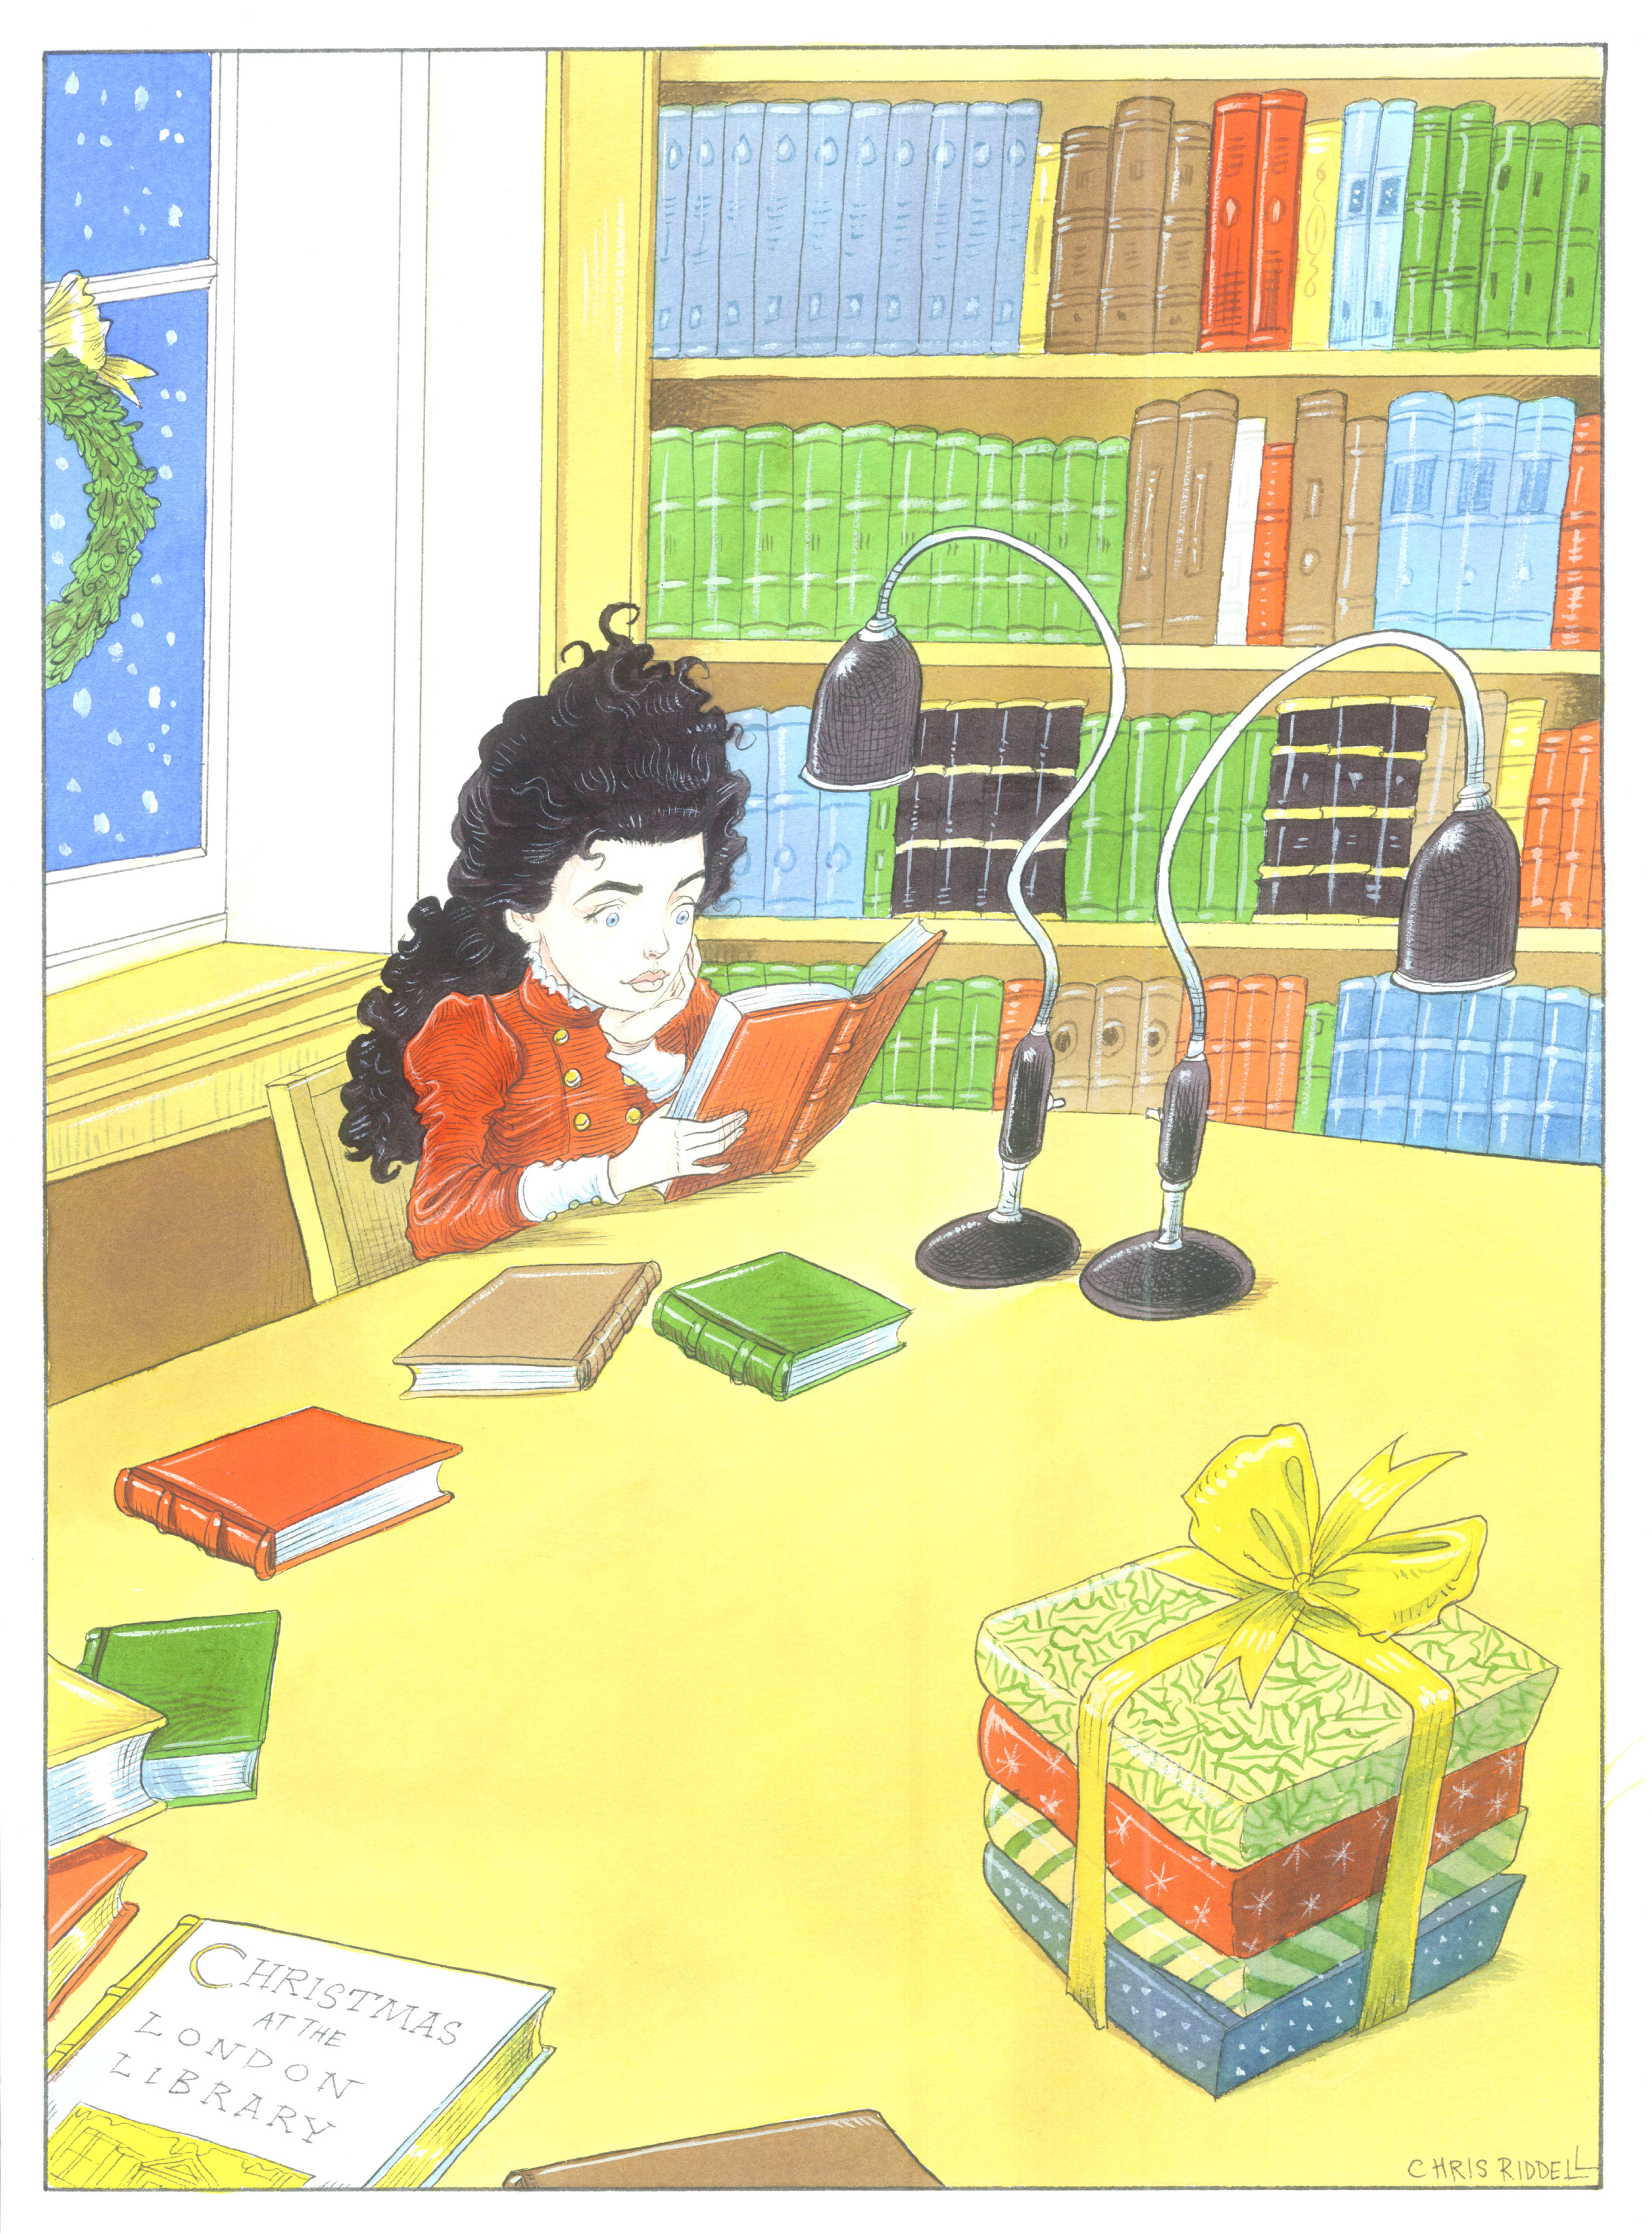 Chris Riddell Card for web